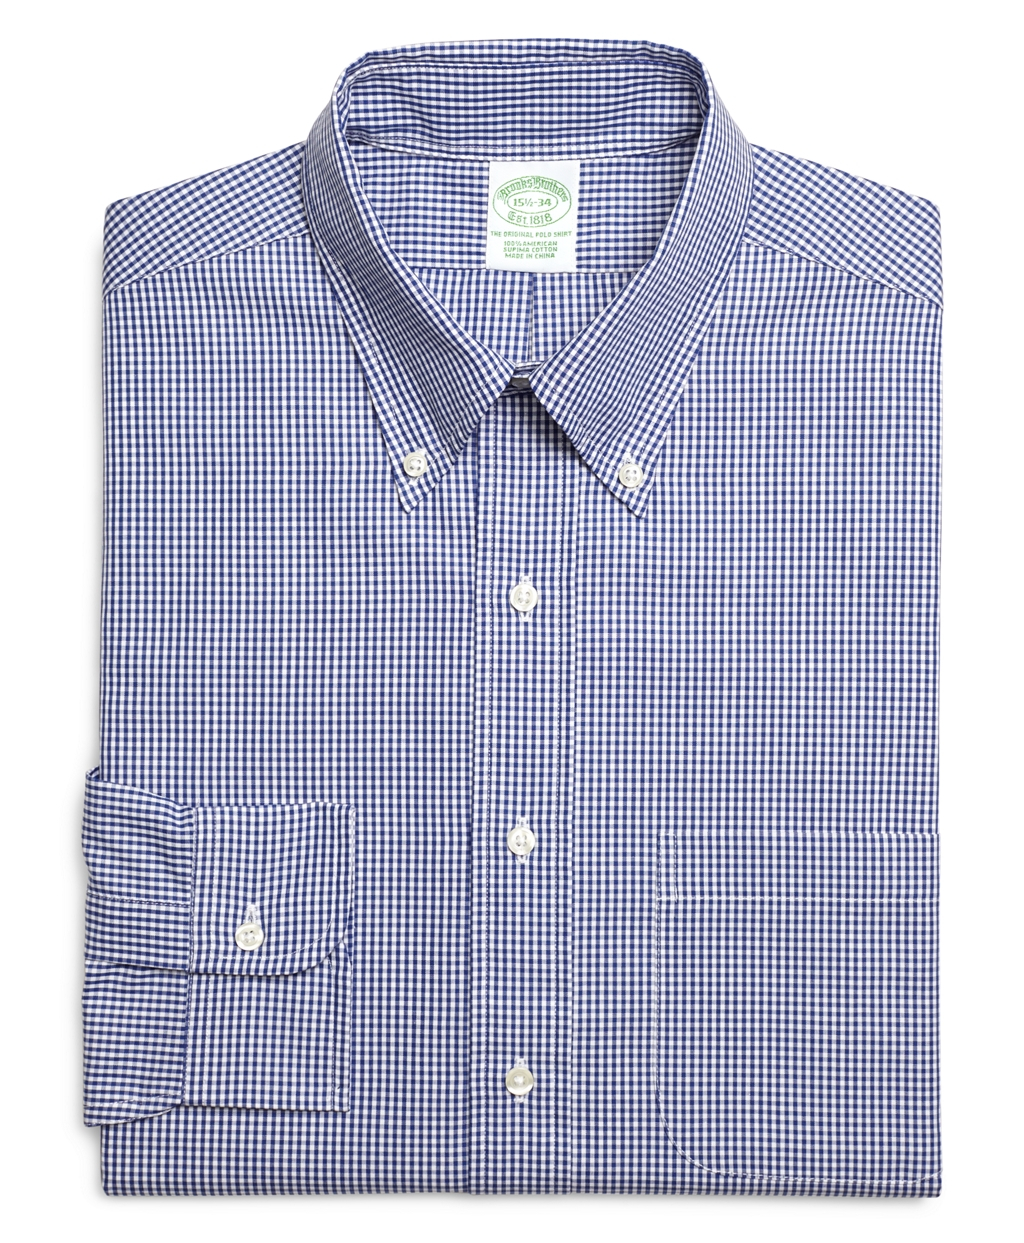 brooks brothers extra slim fit micro gingham dress shirt in blue for men lyst. Black Bedroom Furniture Sets. Home Design Ideas